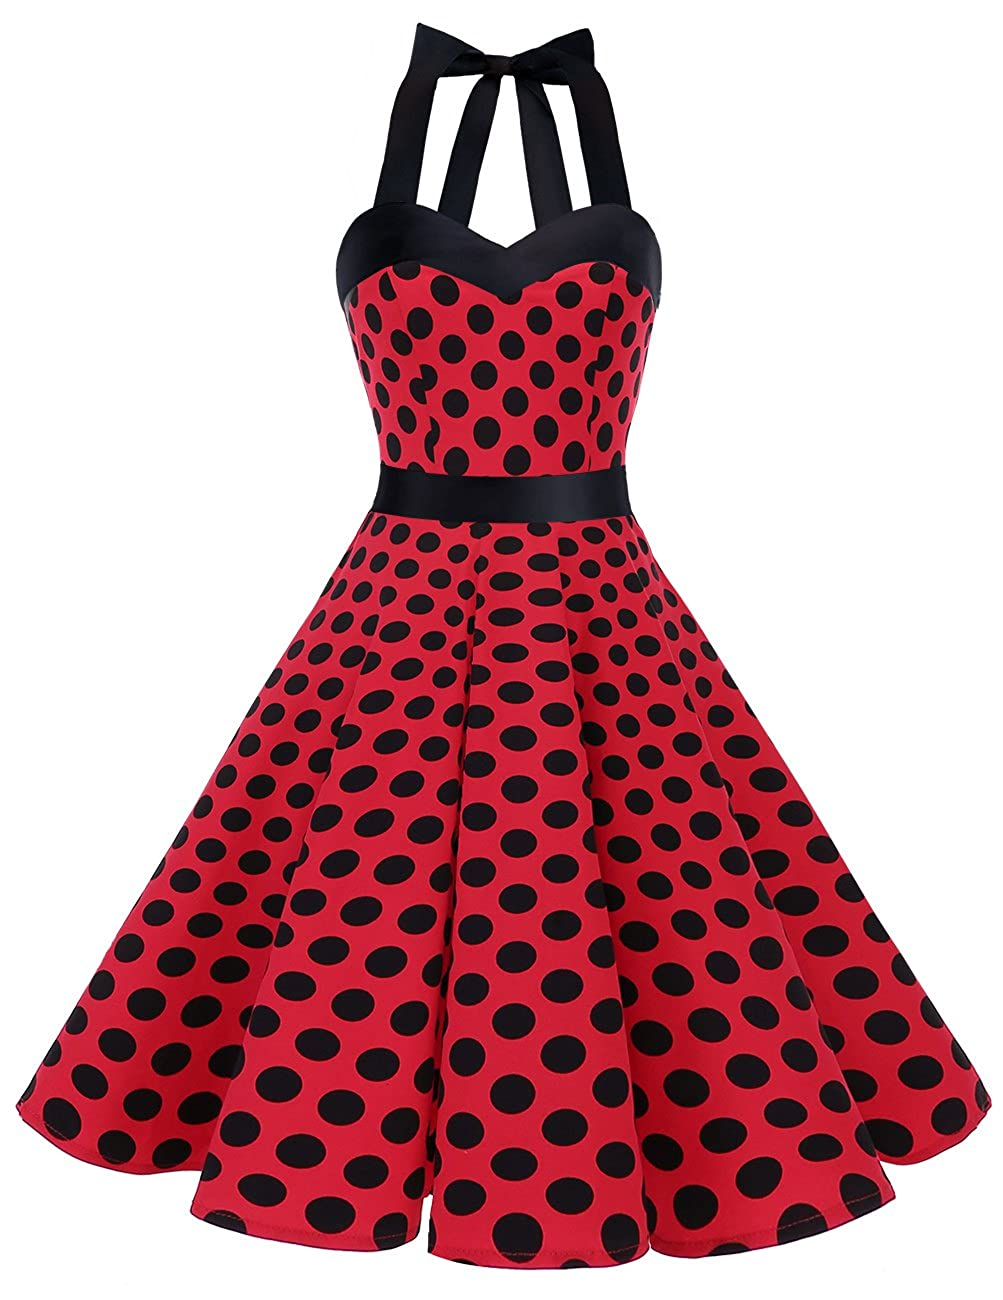 TALLA M. Dresstells® Halter 50s Rockabilly Polka Dots Audrey Dress Retro Cocktail Dress Red Black Dot M